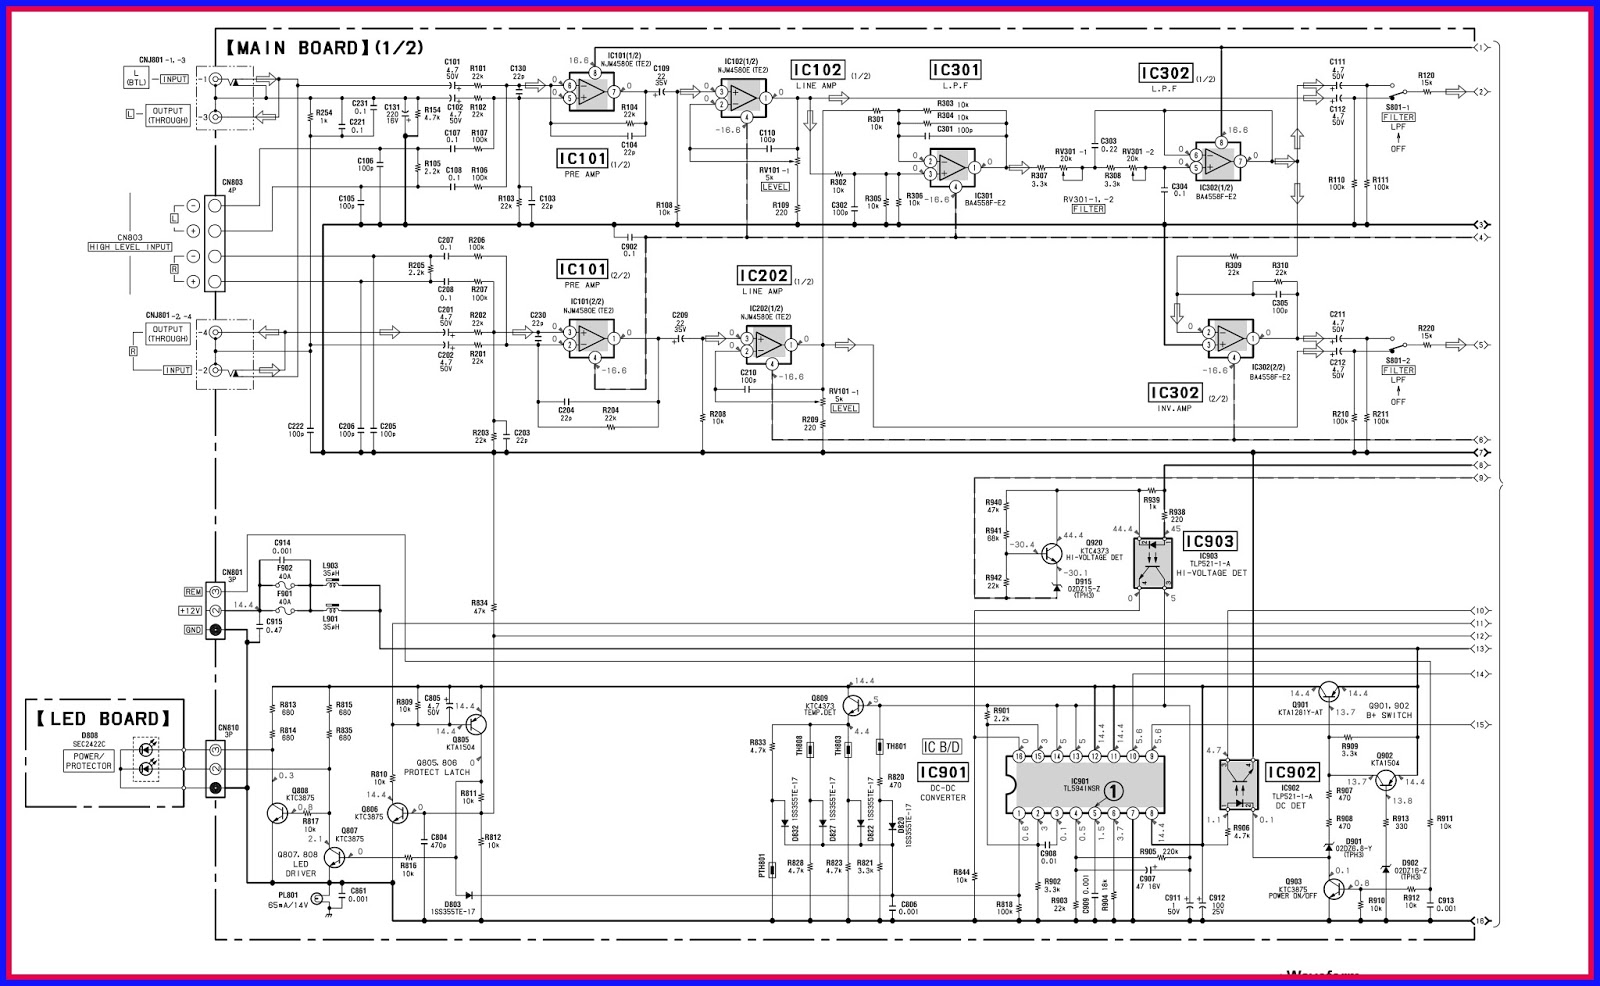 Electronic Equipment Repair Centre Sony Xm 2200gtx Idle Current Led Board Wiring Diagram Circuit